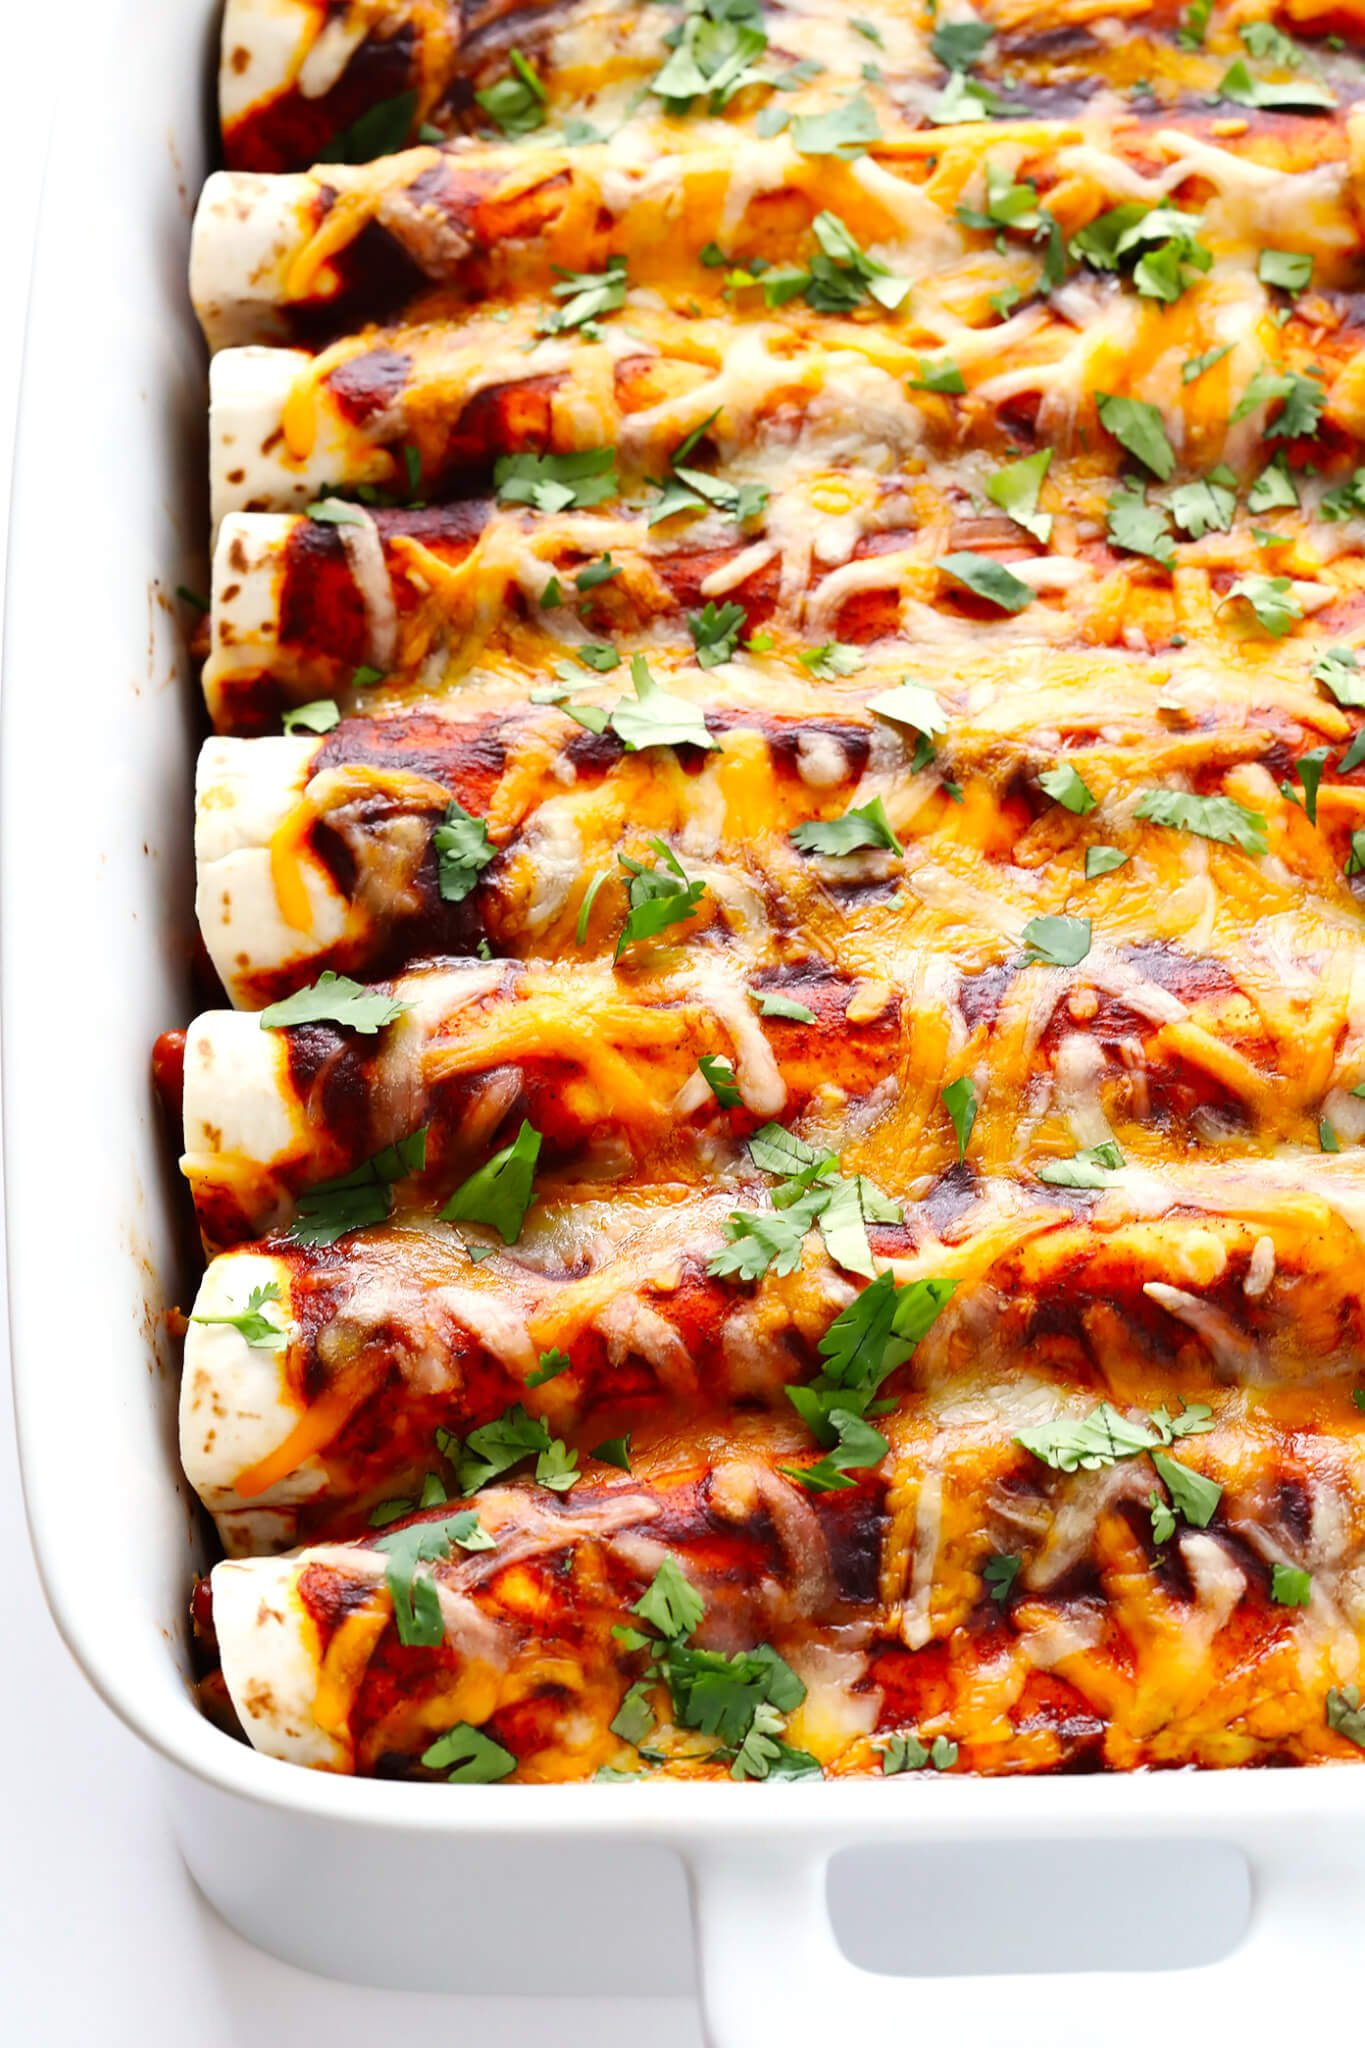 This Ancho Chicken Enchiladas recipe is easy to make, full of big flavor, nice and cheesy and filled with chicken and beans, and perfect for Cinco de Mayo or anytime you're feeling like Mexican food! | gimmesomeoven.com